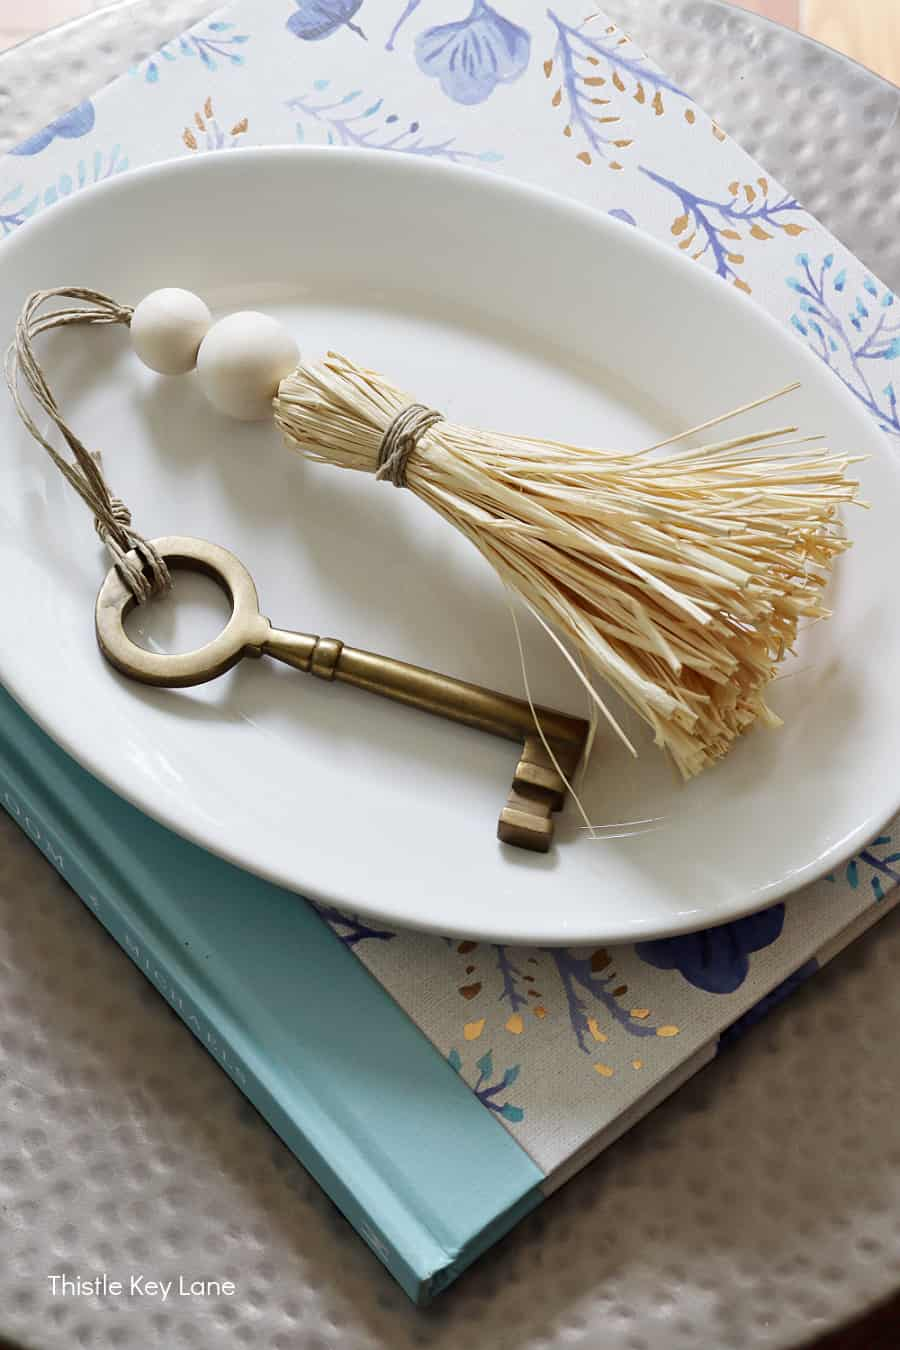 Key and tassel on an ironstone plate.